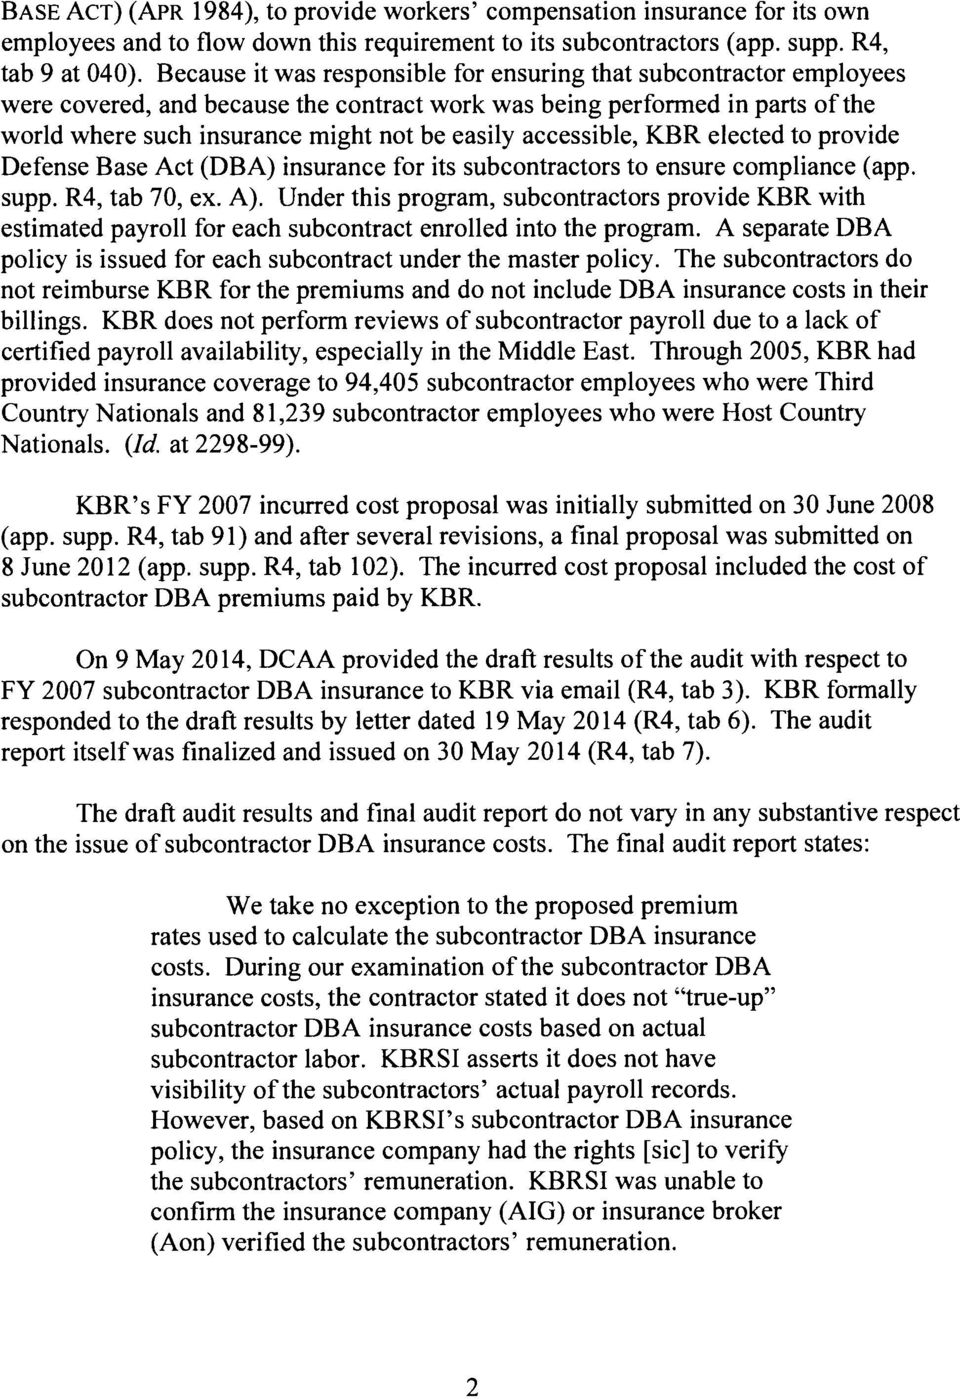 ARMED SERVICES BOARD OF CONTRACT APPEALS - PDF